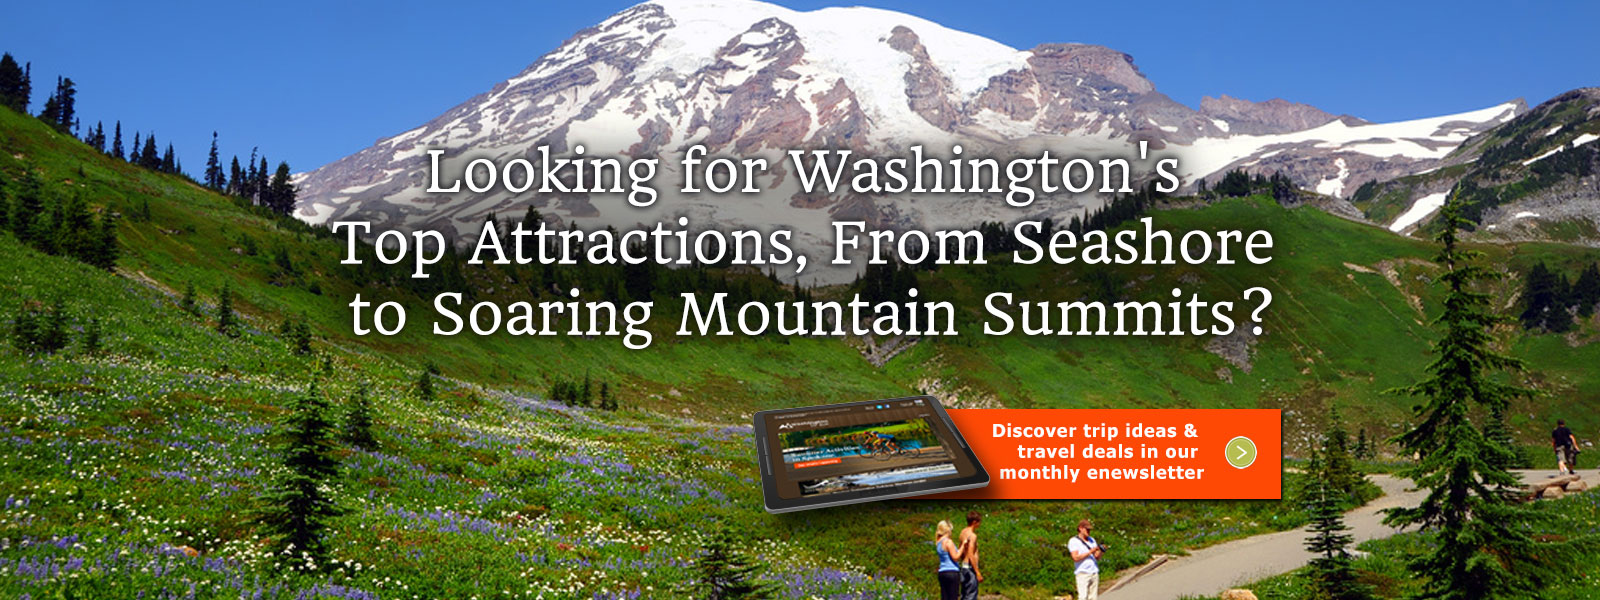 Looking for Washington's Top Attractions, From Seashore to Soaring Mountain Summits? Discover trip ideas and travel deals in our monthly enewsletter